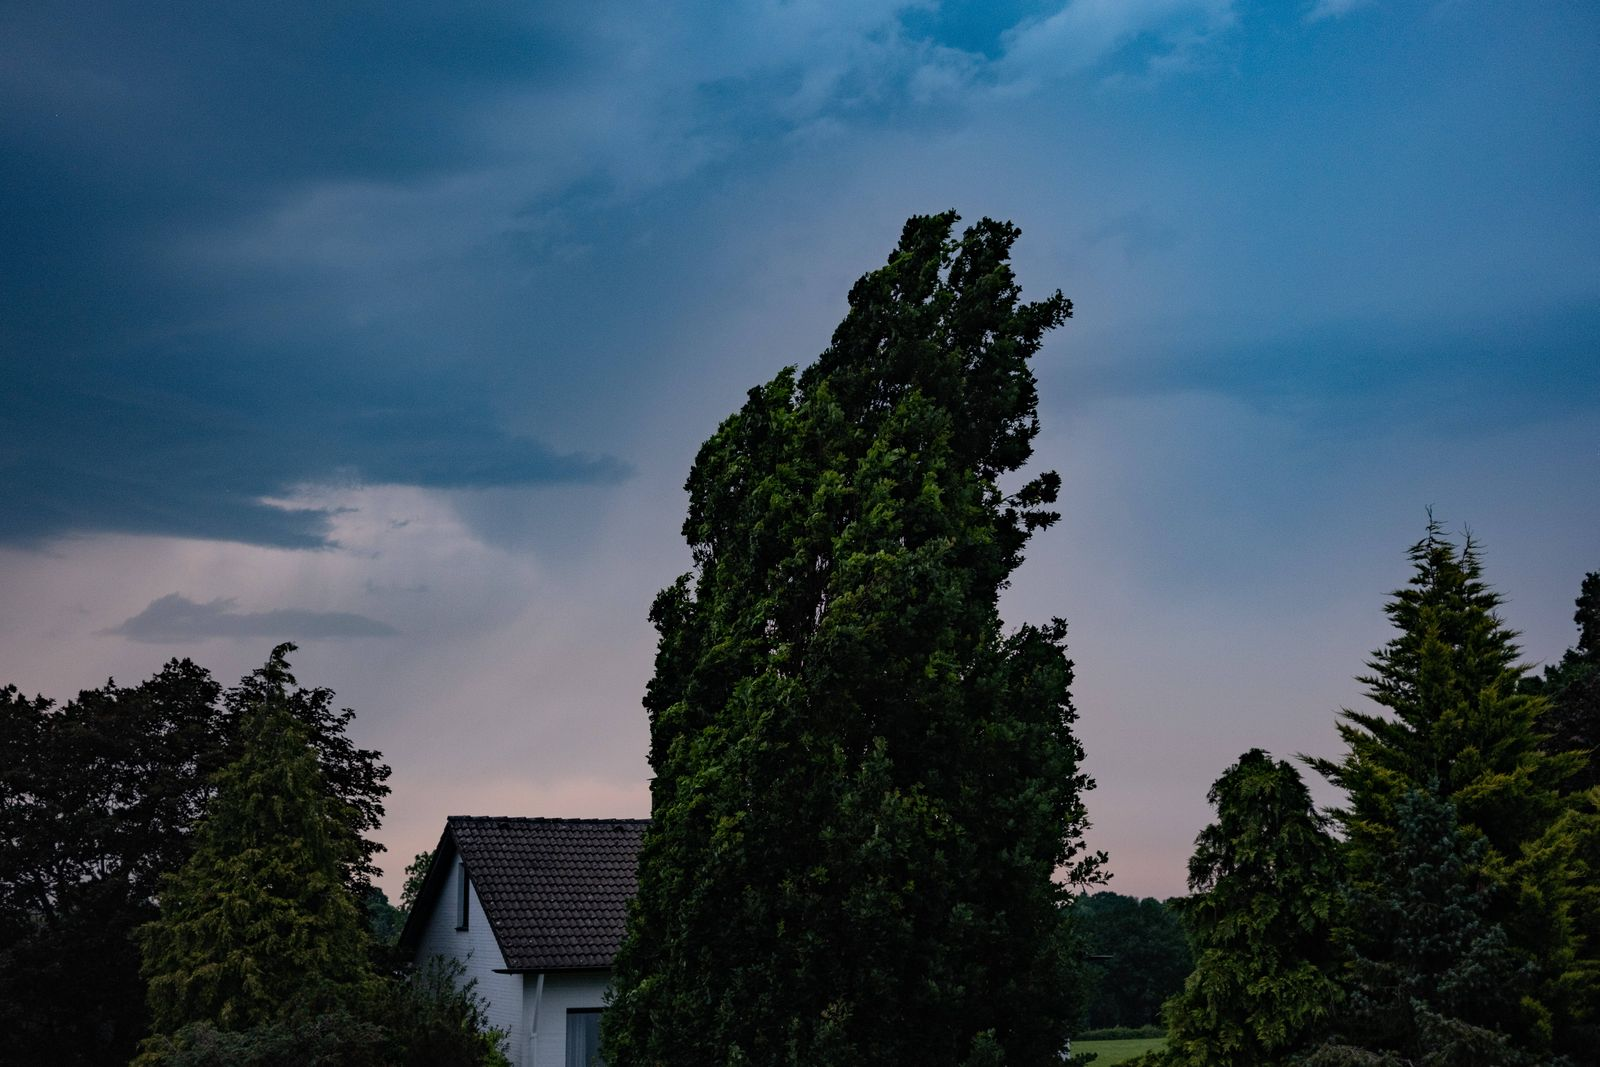 Heavy thunderstorms in Aachen after the first heat wave of summer. In Aachen on June 19, 2021